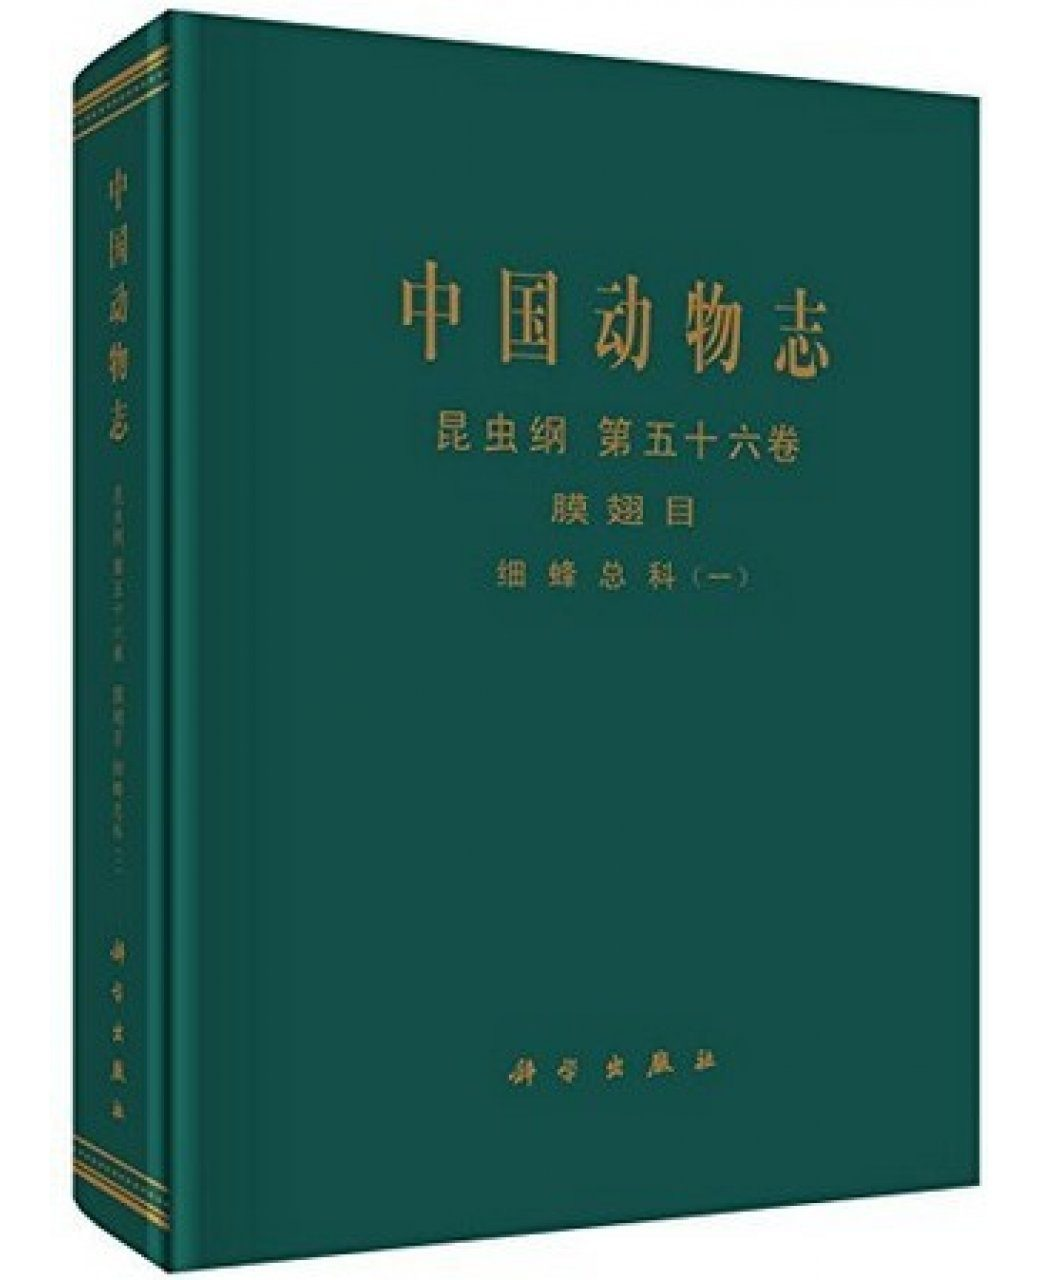 Fauna Sinica: Insecta, Volume 56: Hymenoptera: Proctotrupoidea (I) [Chinese]